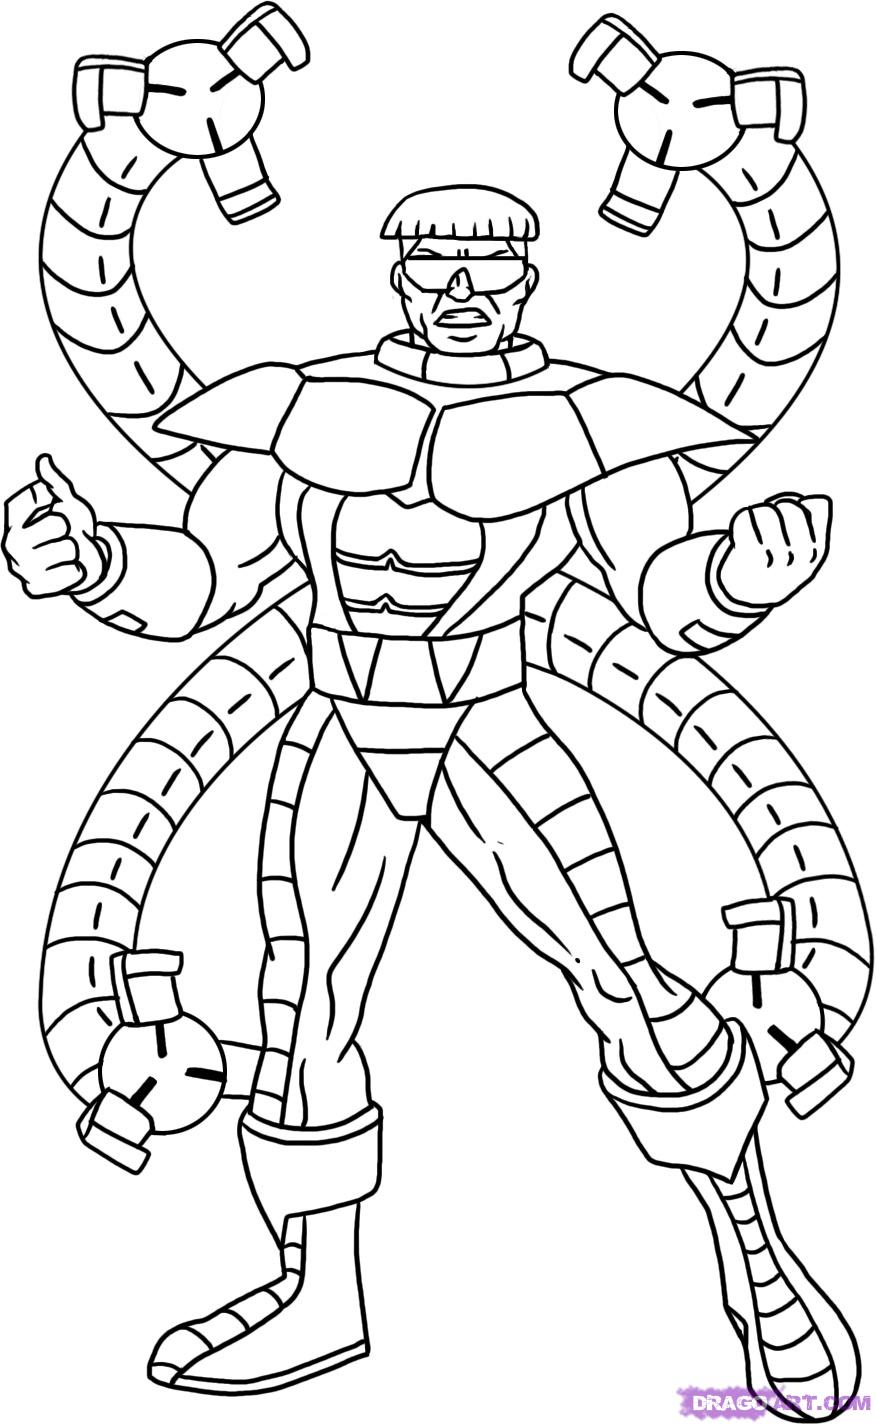 marvel printable coloring pages printable wolverine coloring pages in 2020 marvel printable pages coloring marvel